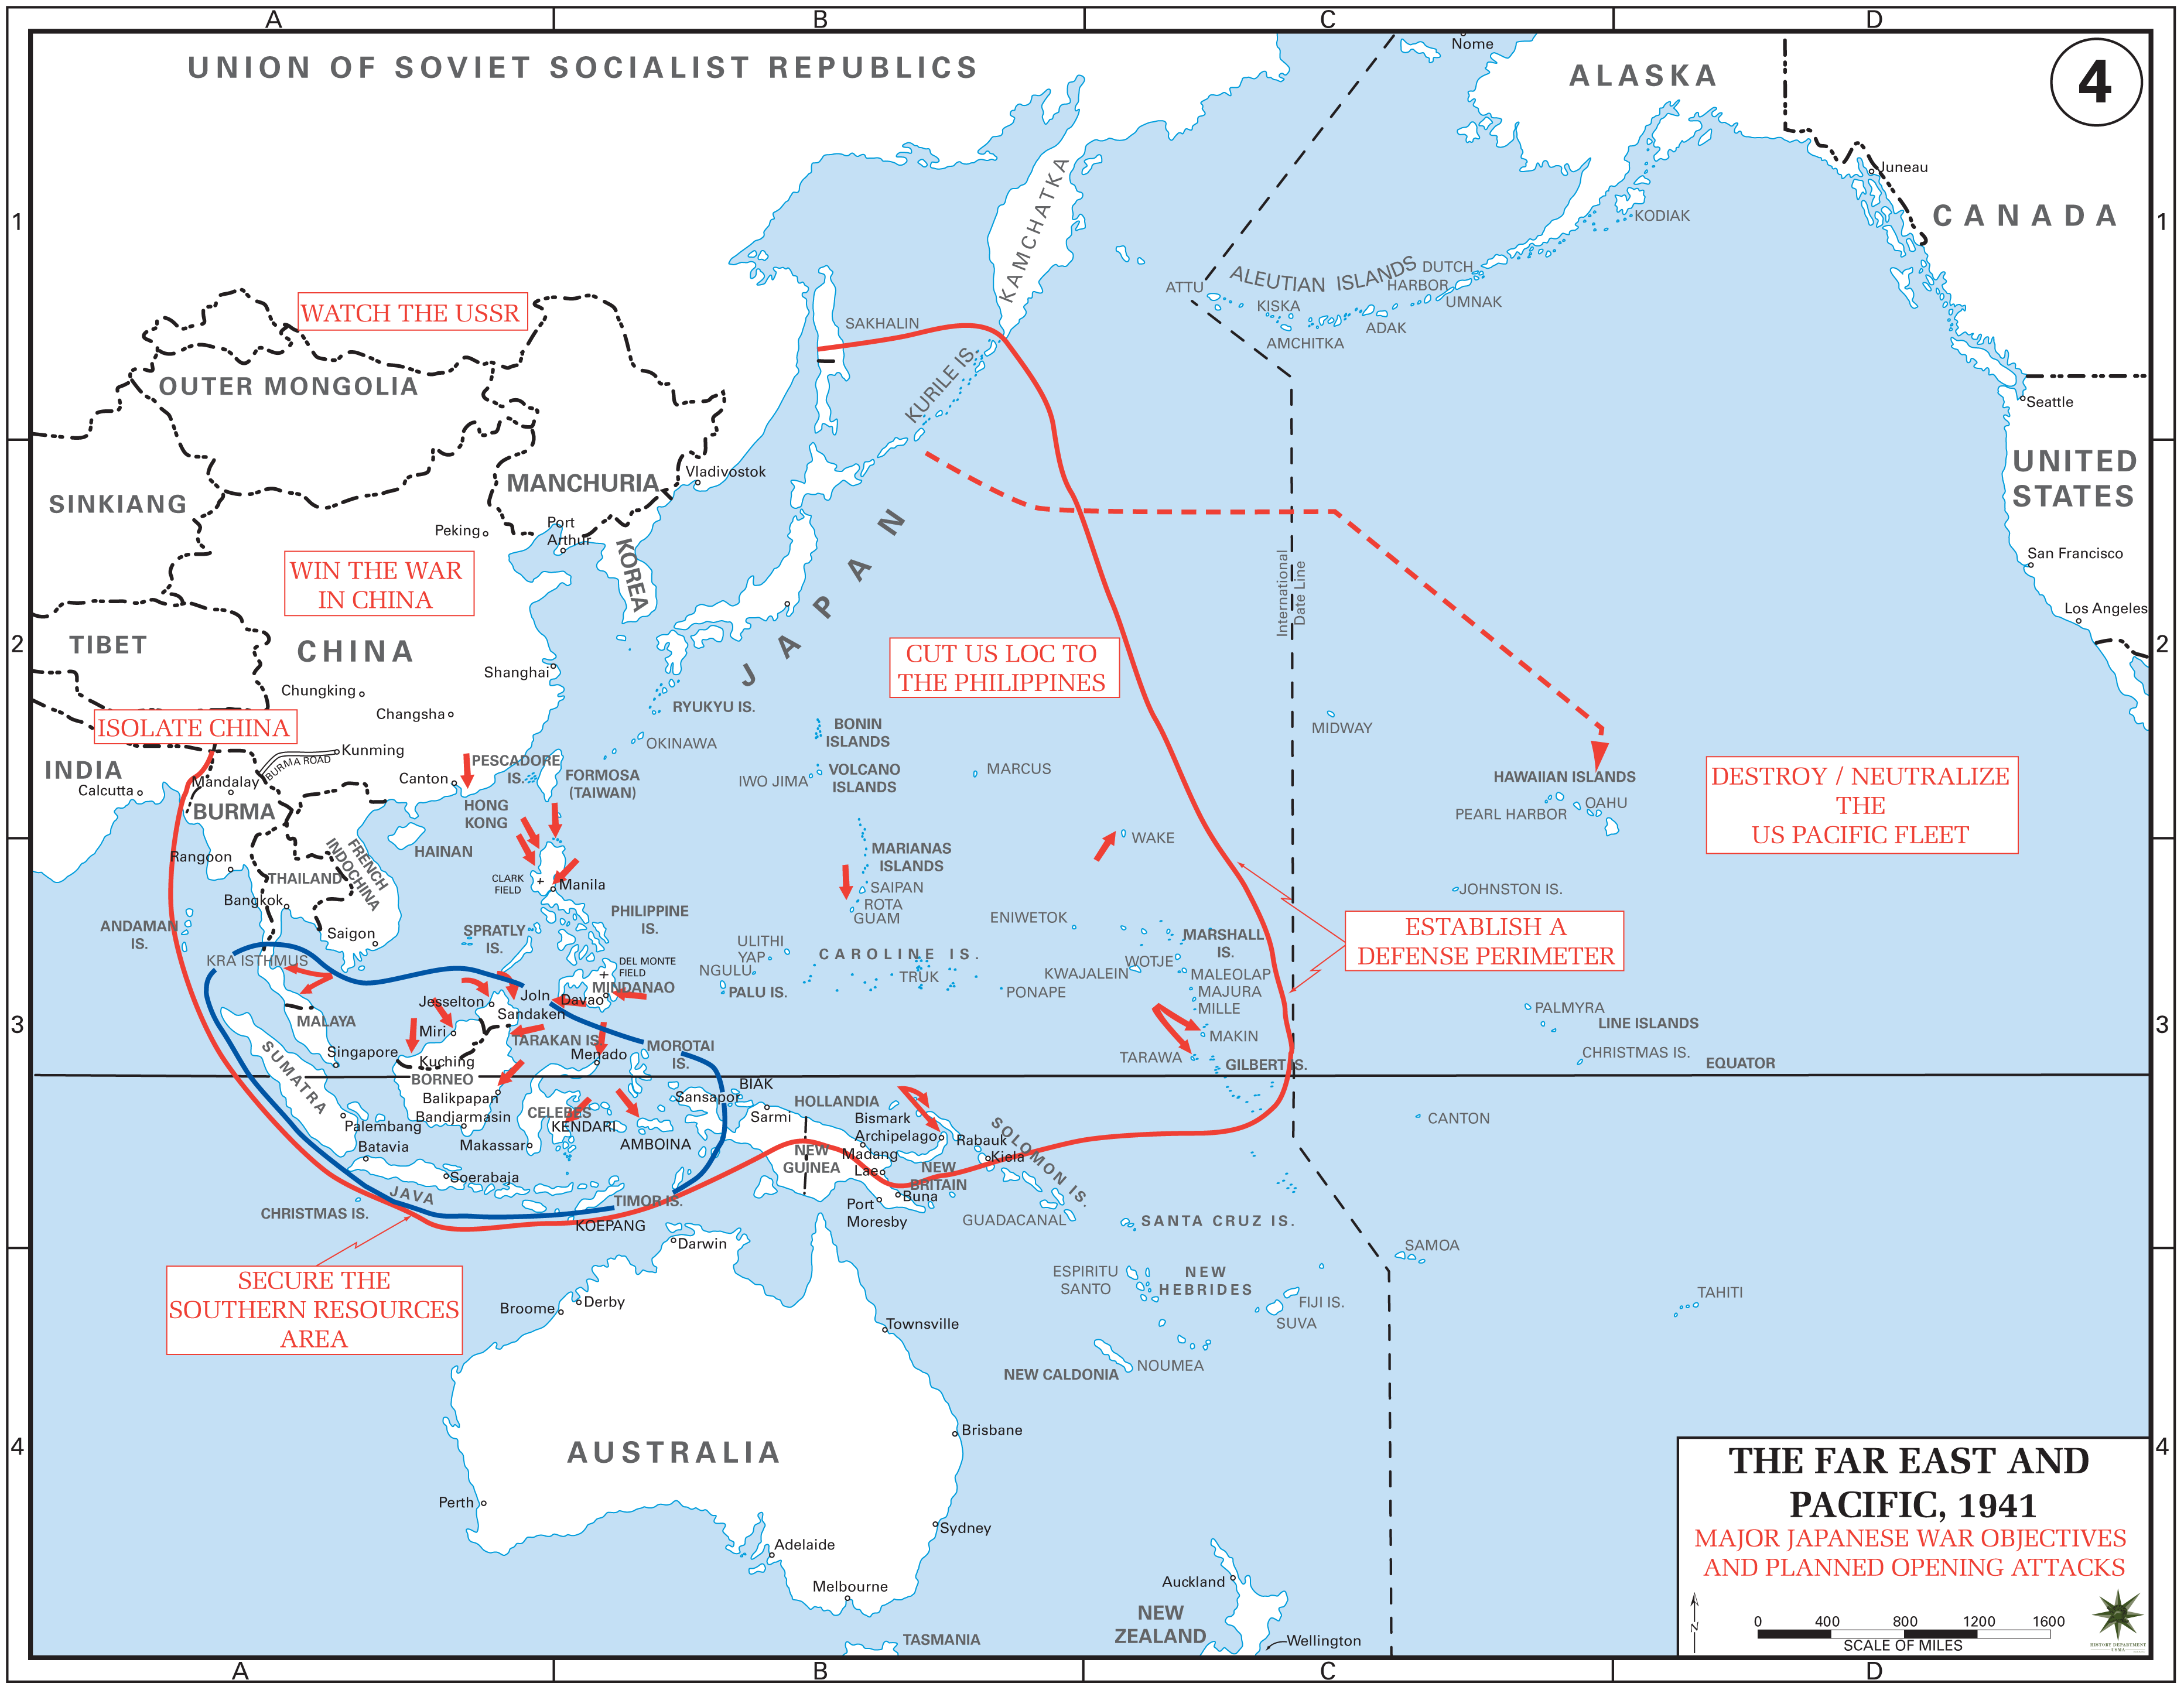 Japanese war objectives and planned opening attacks in World War II